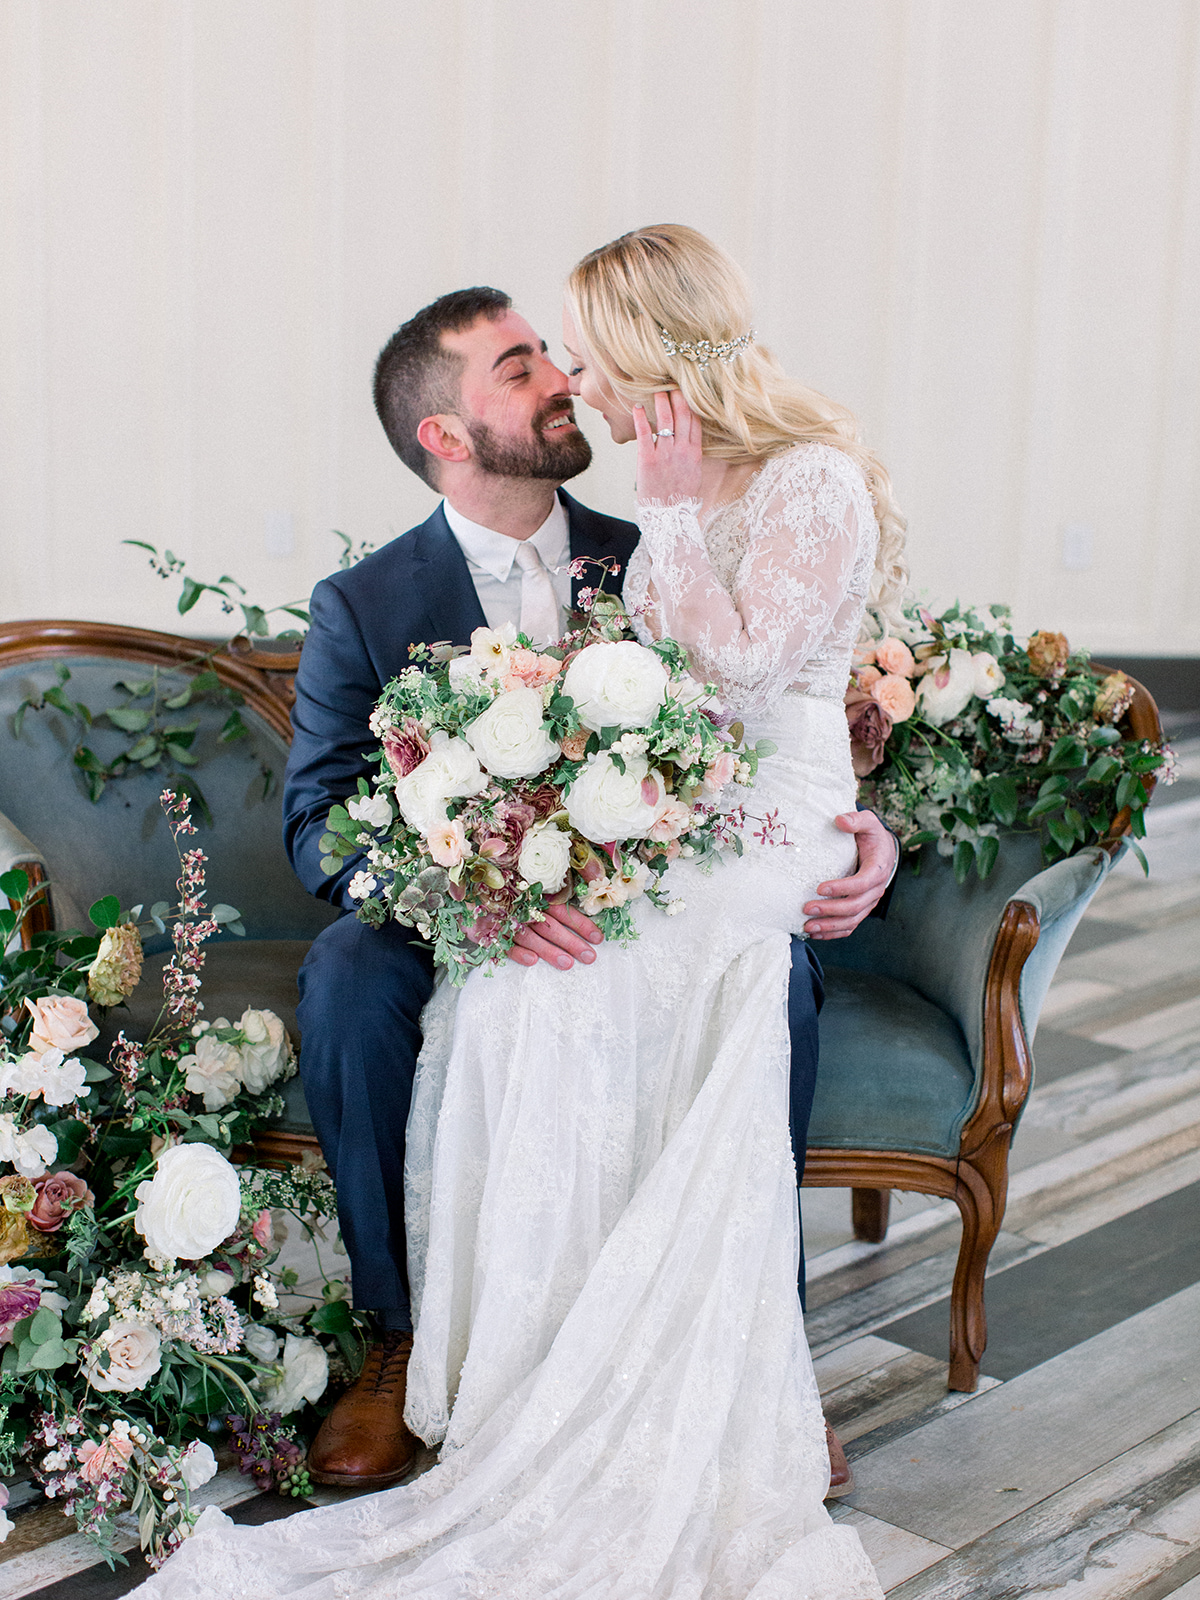 bride sitting on groom's lap on vintage blue couch covered in flowers